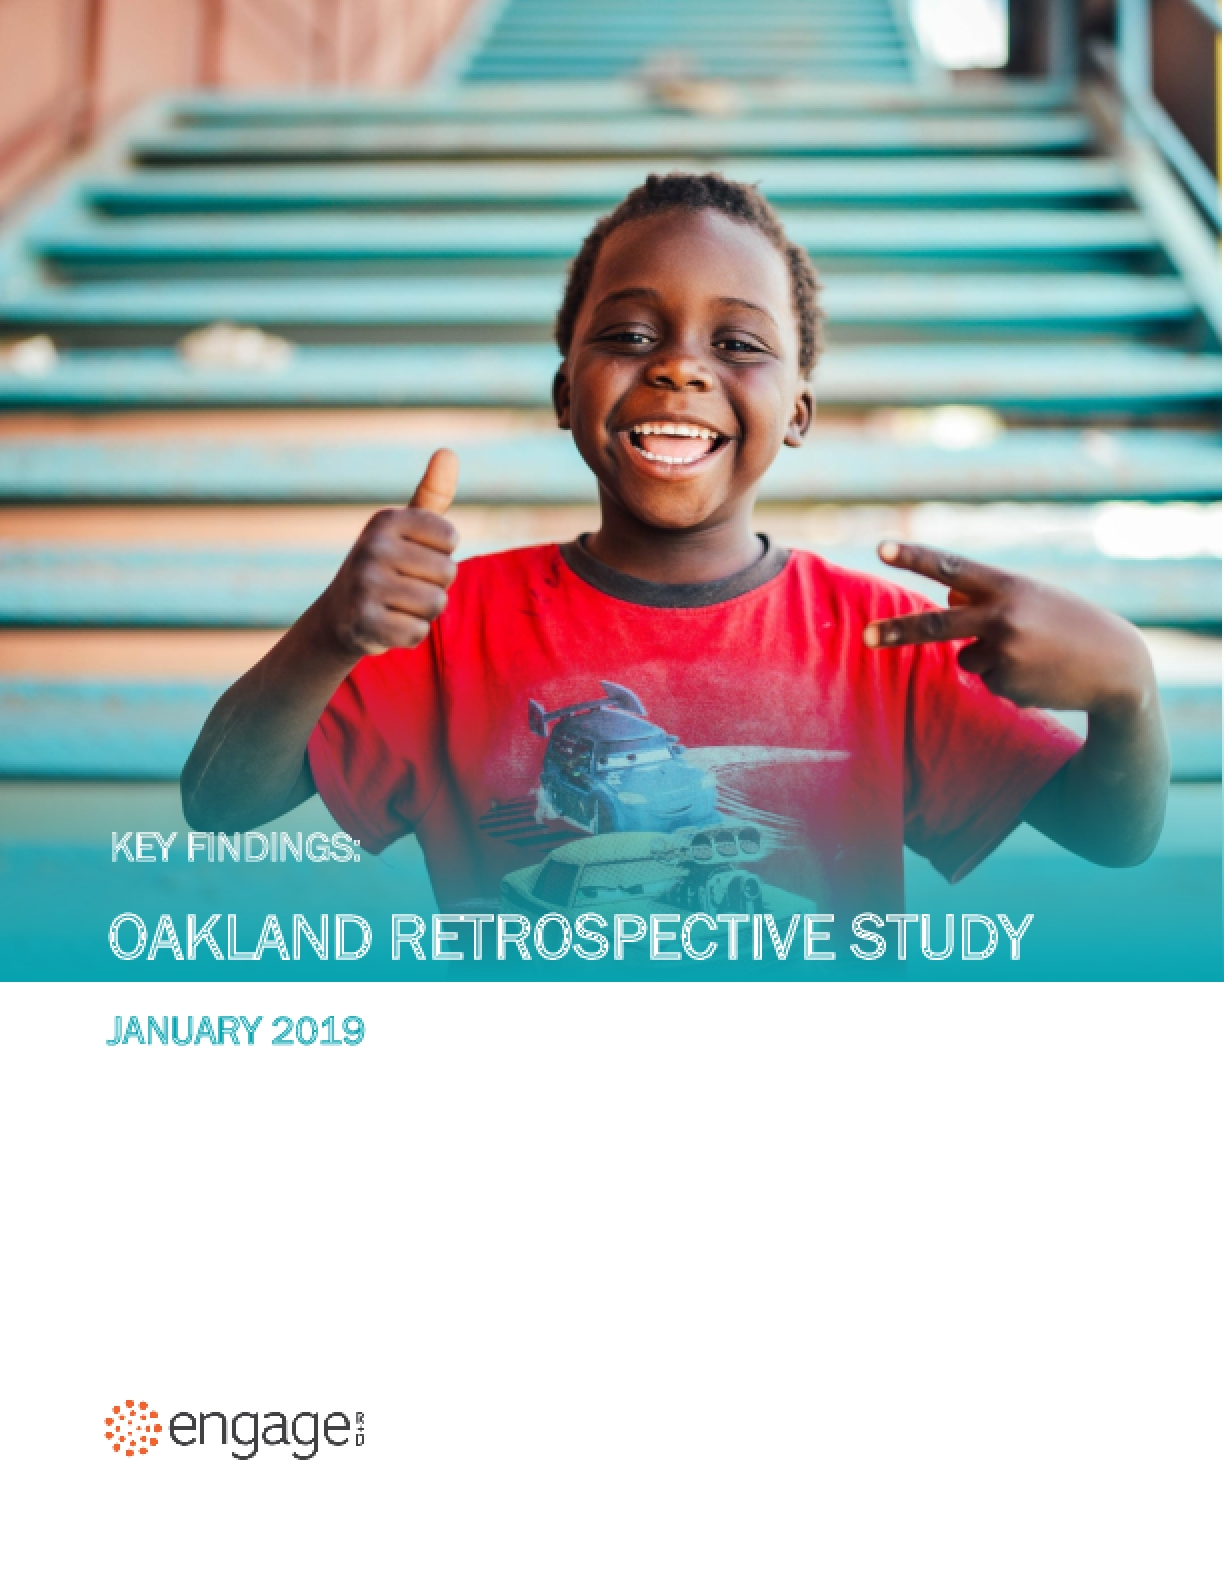 Key Findings: Oakland Retrospective Study